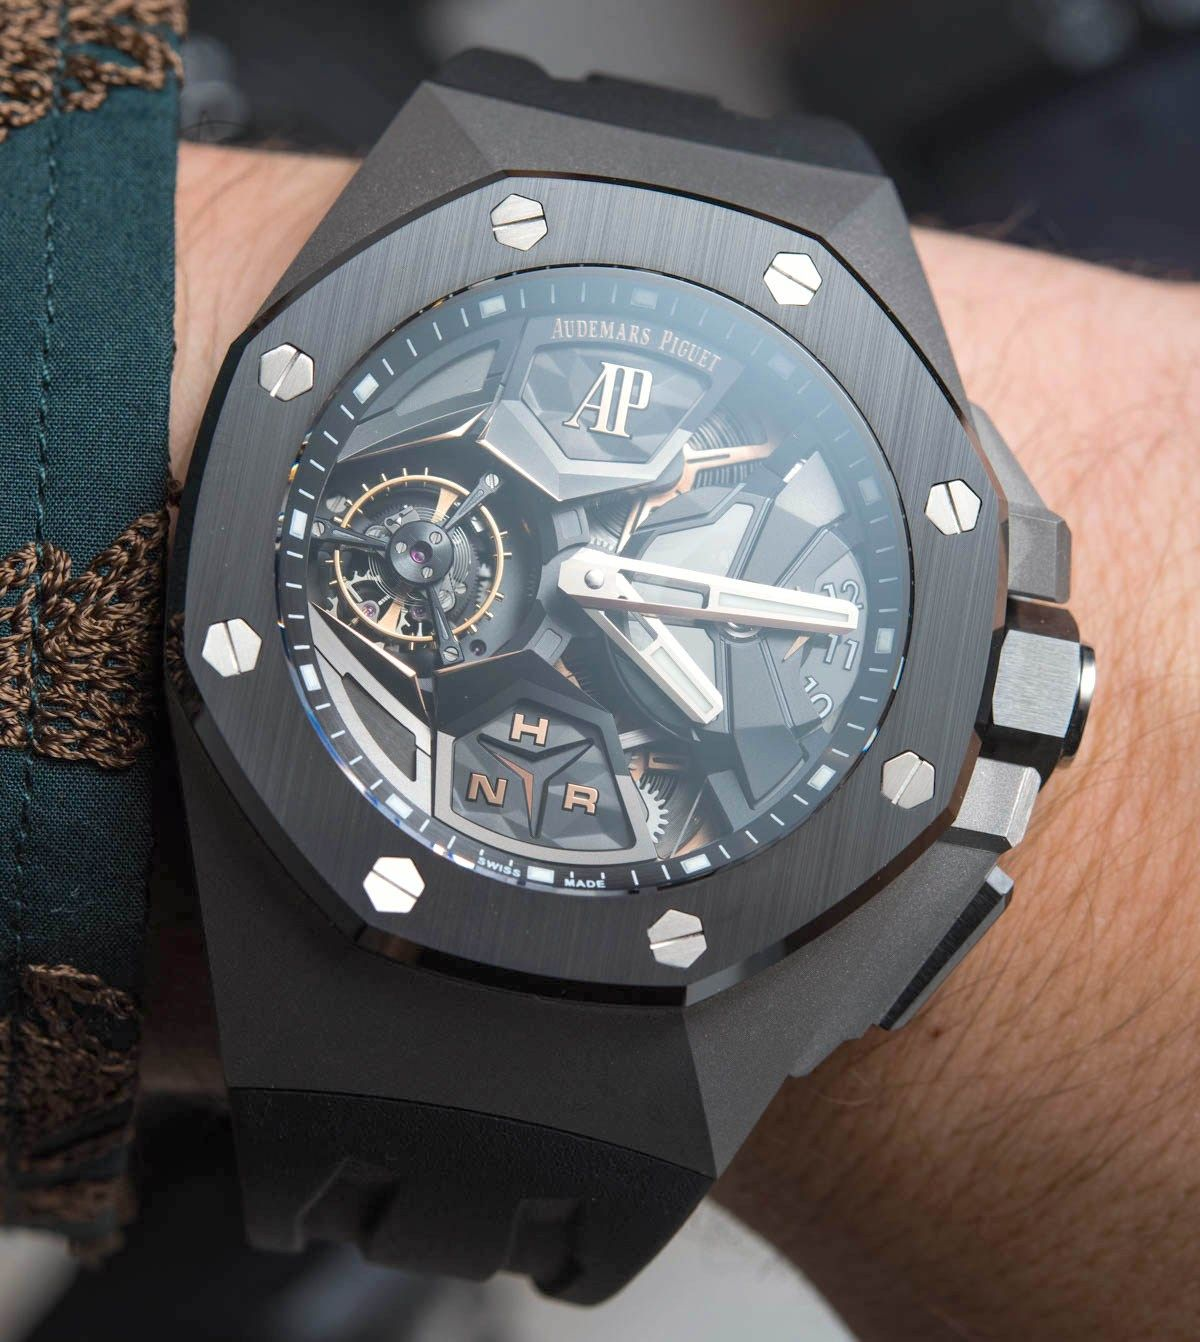 Audemars Piguet Royal Oak Concept Flying Tourbillon Gmt Watch Hands On